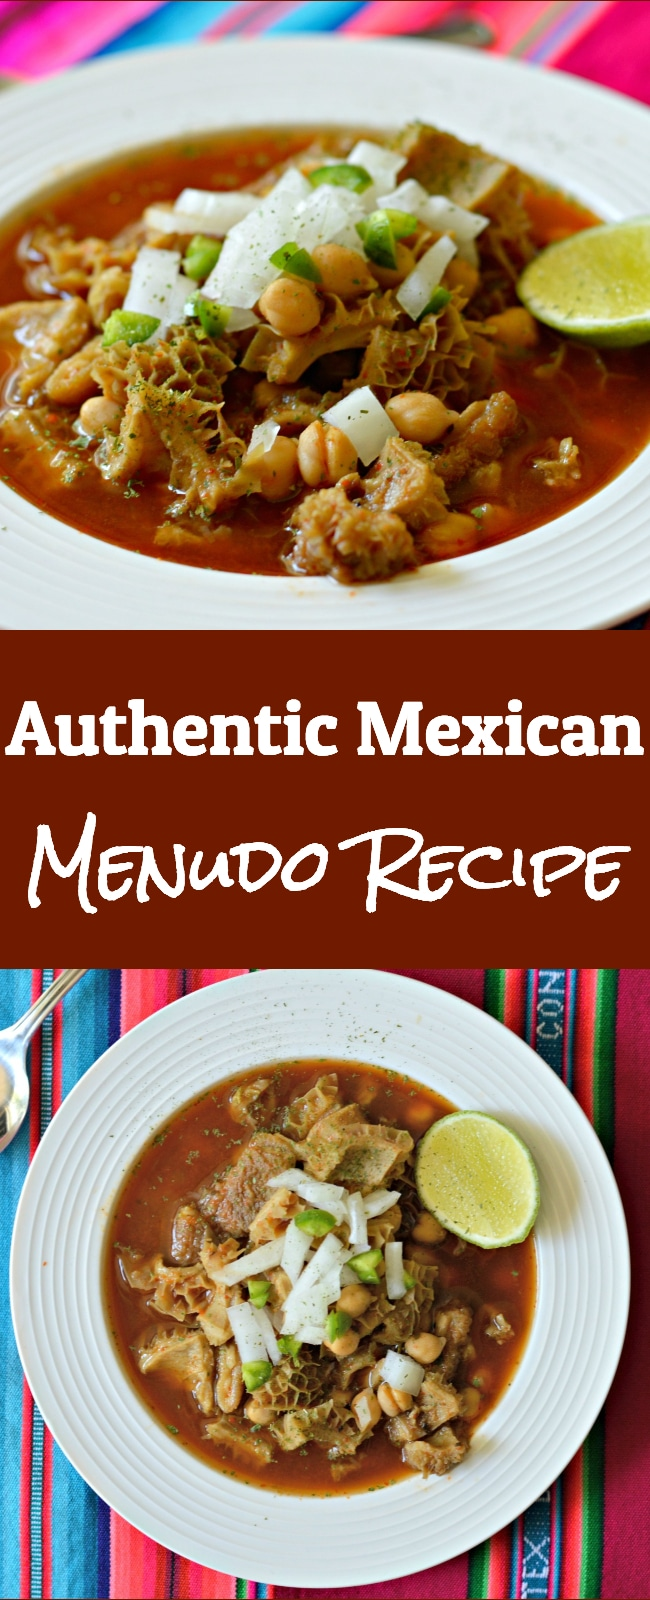 This Authentic Mexican Menudo Recipe is as Mexican as it gets and you will be surprised how good it is!